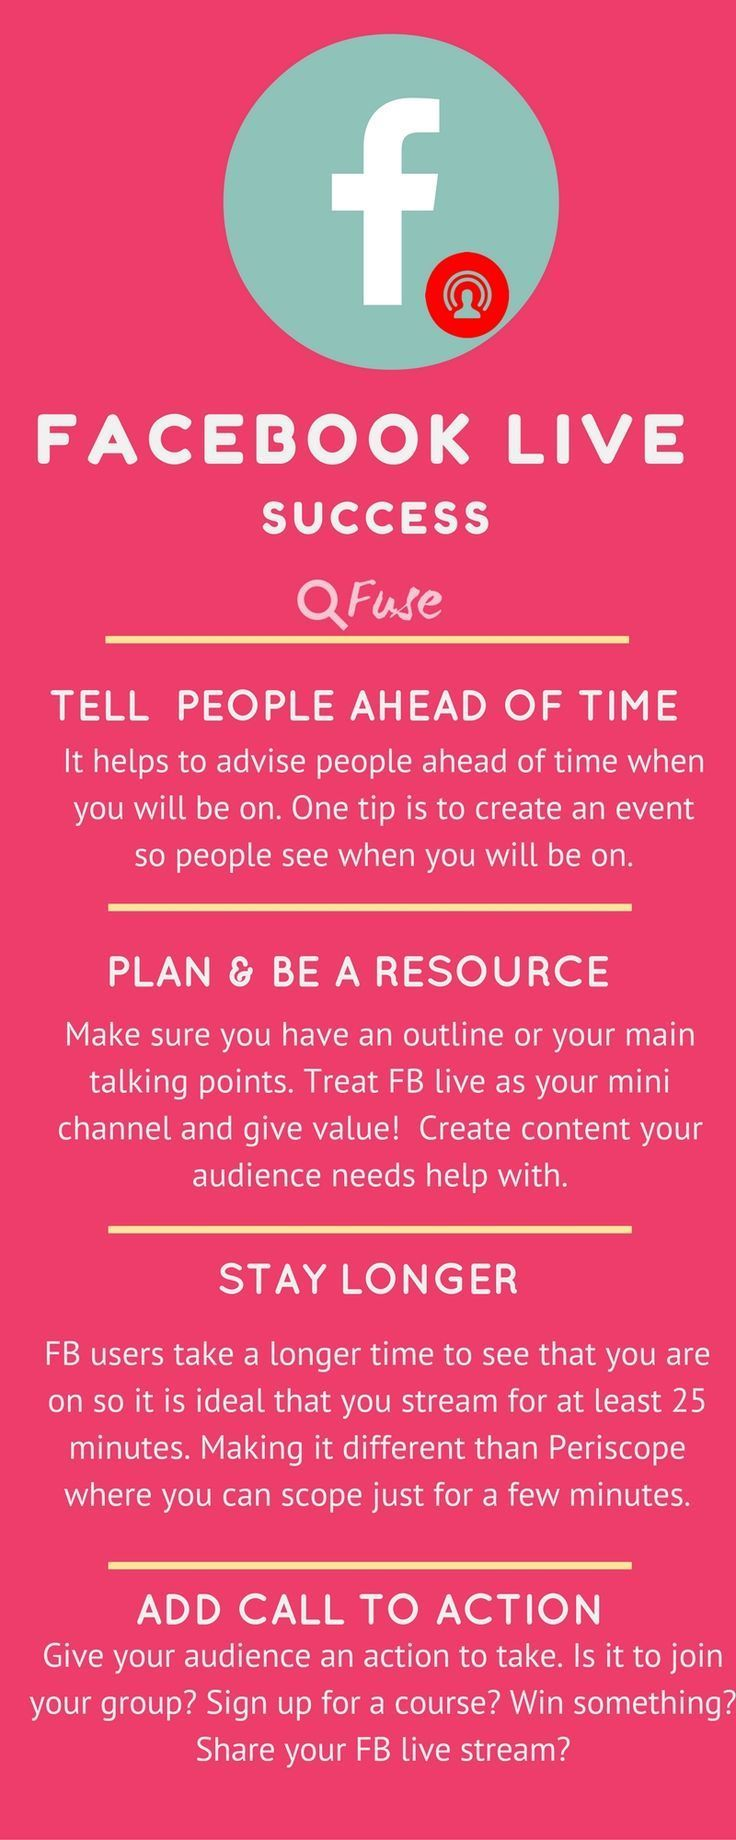 Have you tried Facebook Live stream yet? Need FB live tips? read on through for tips with FB